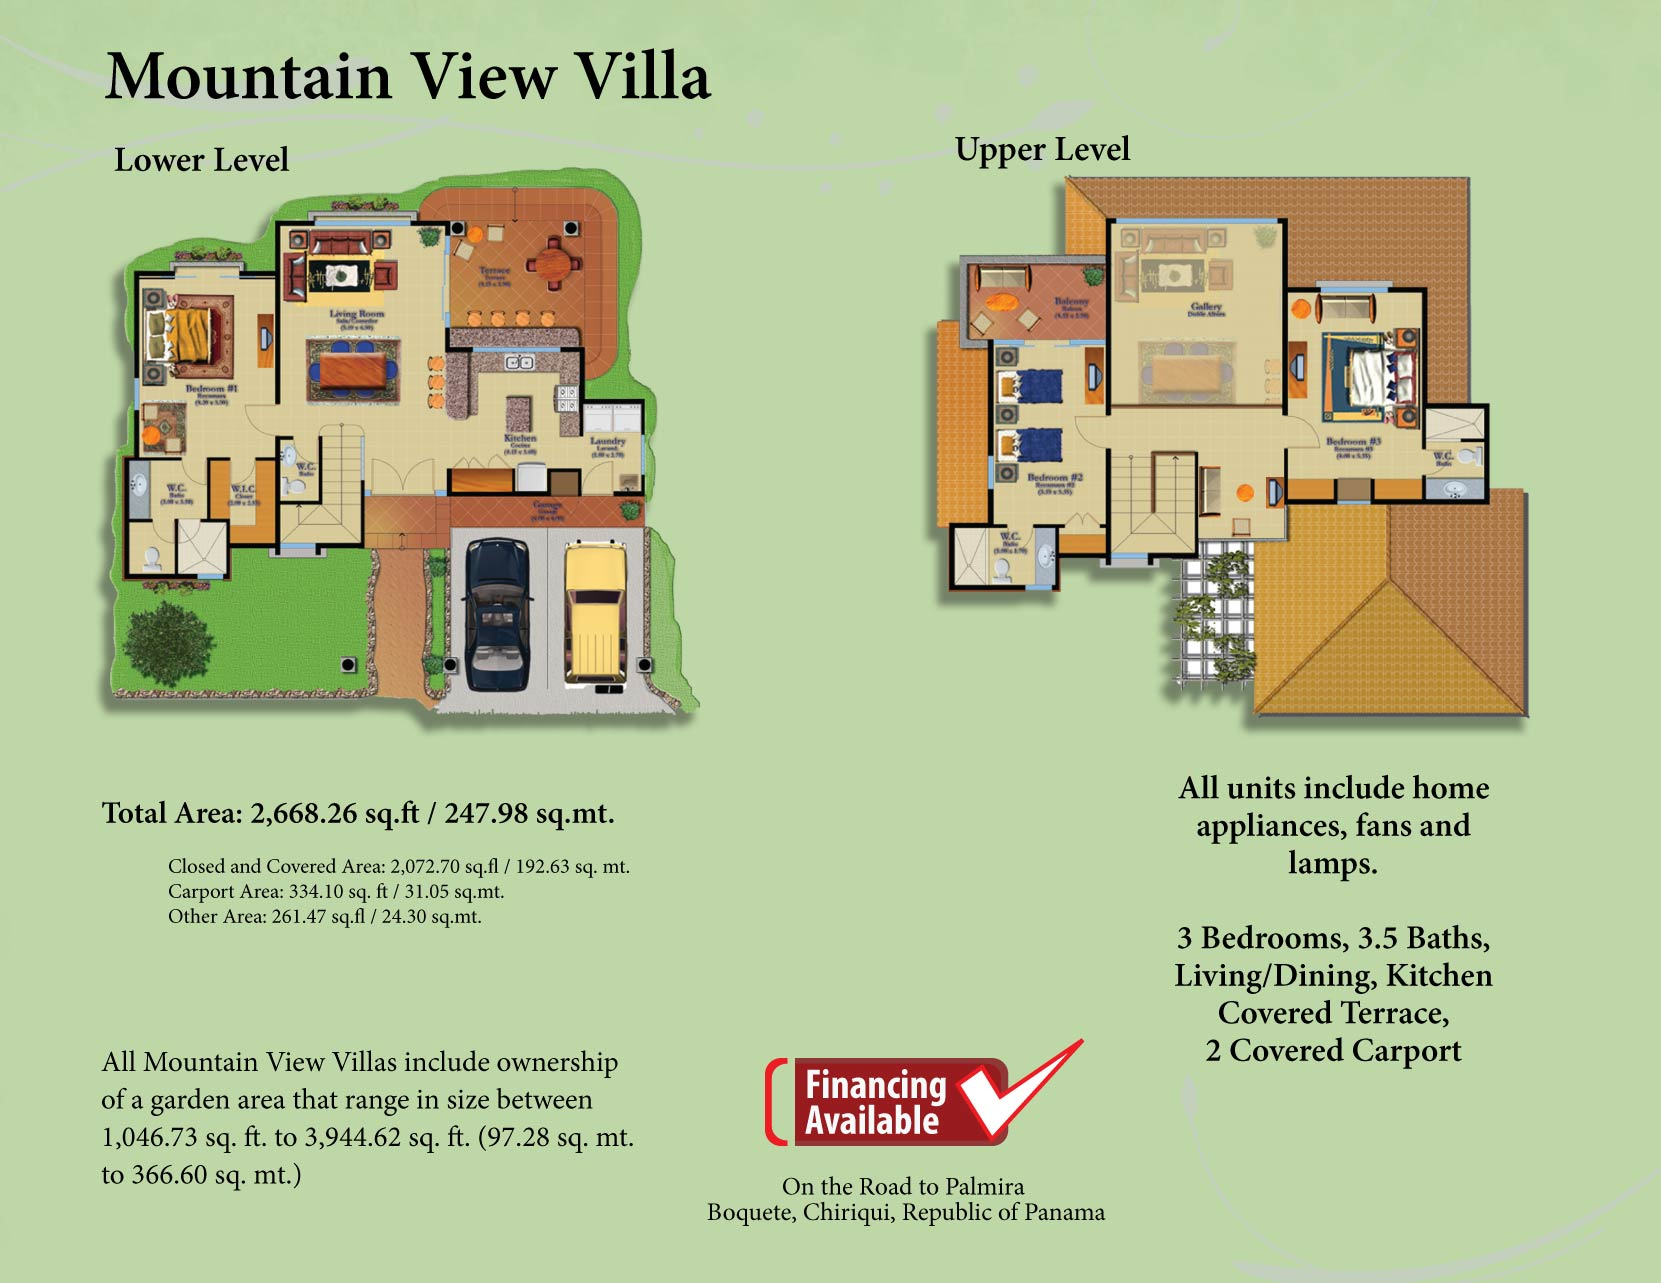 Mountain View Villa